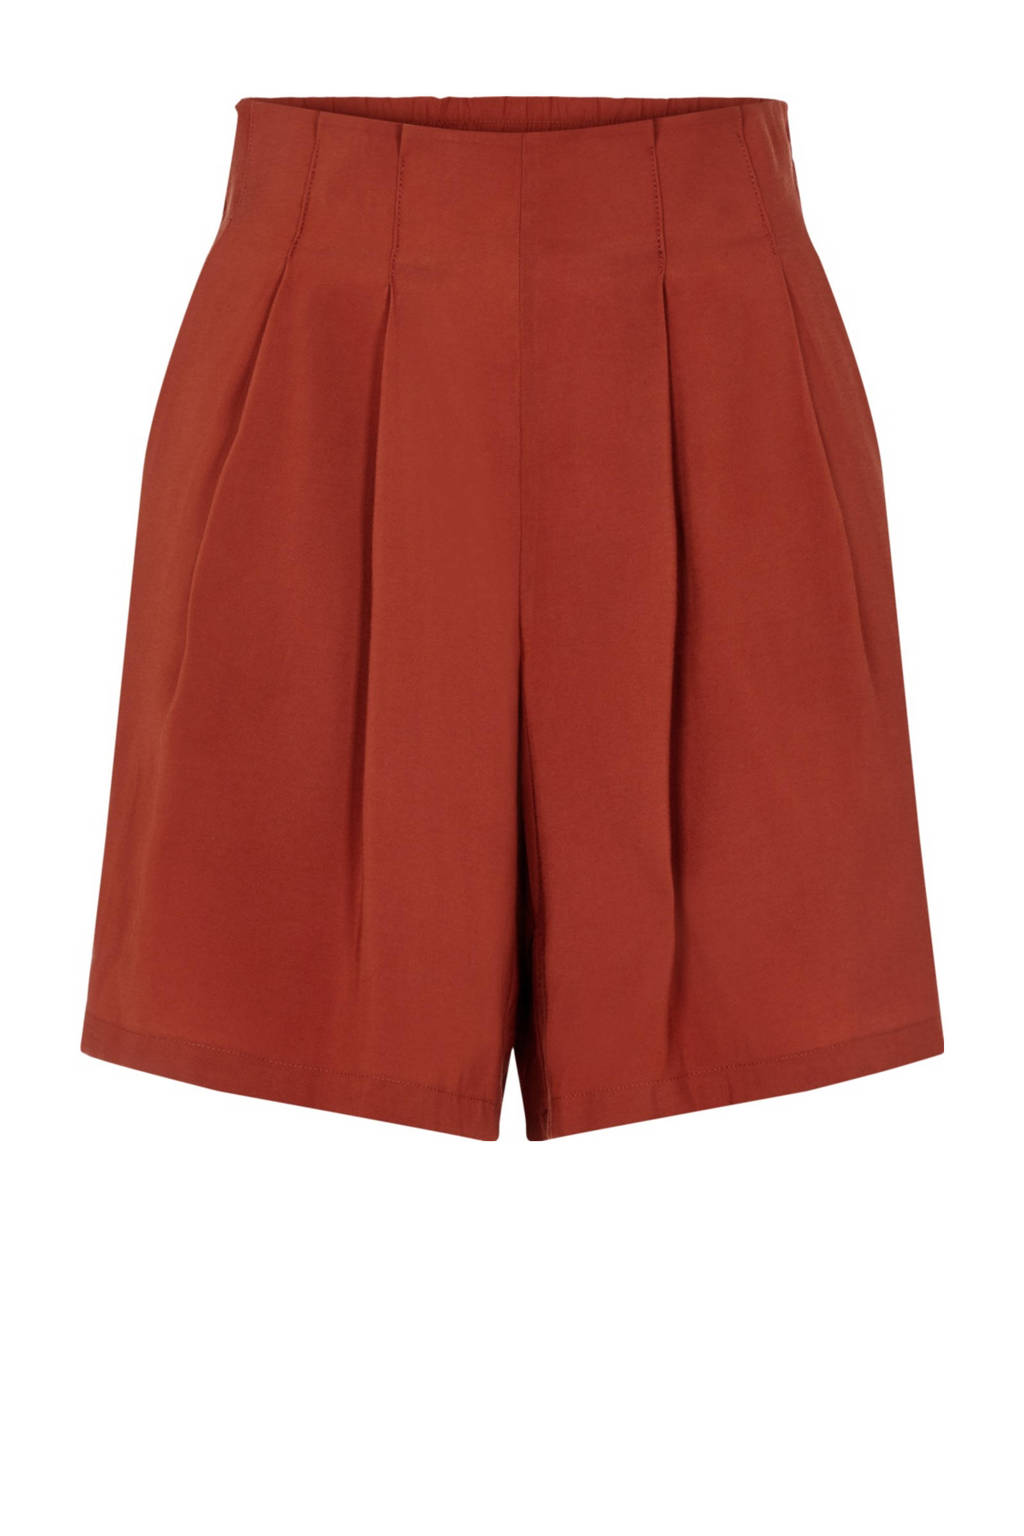 PIECES high waist loose fit short rood, Rood